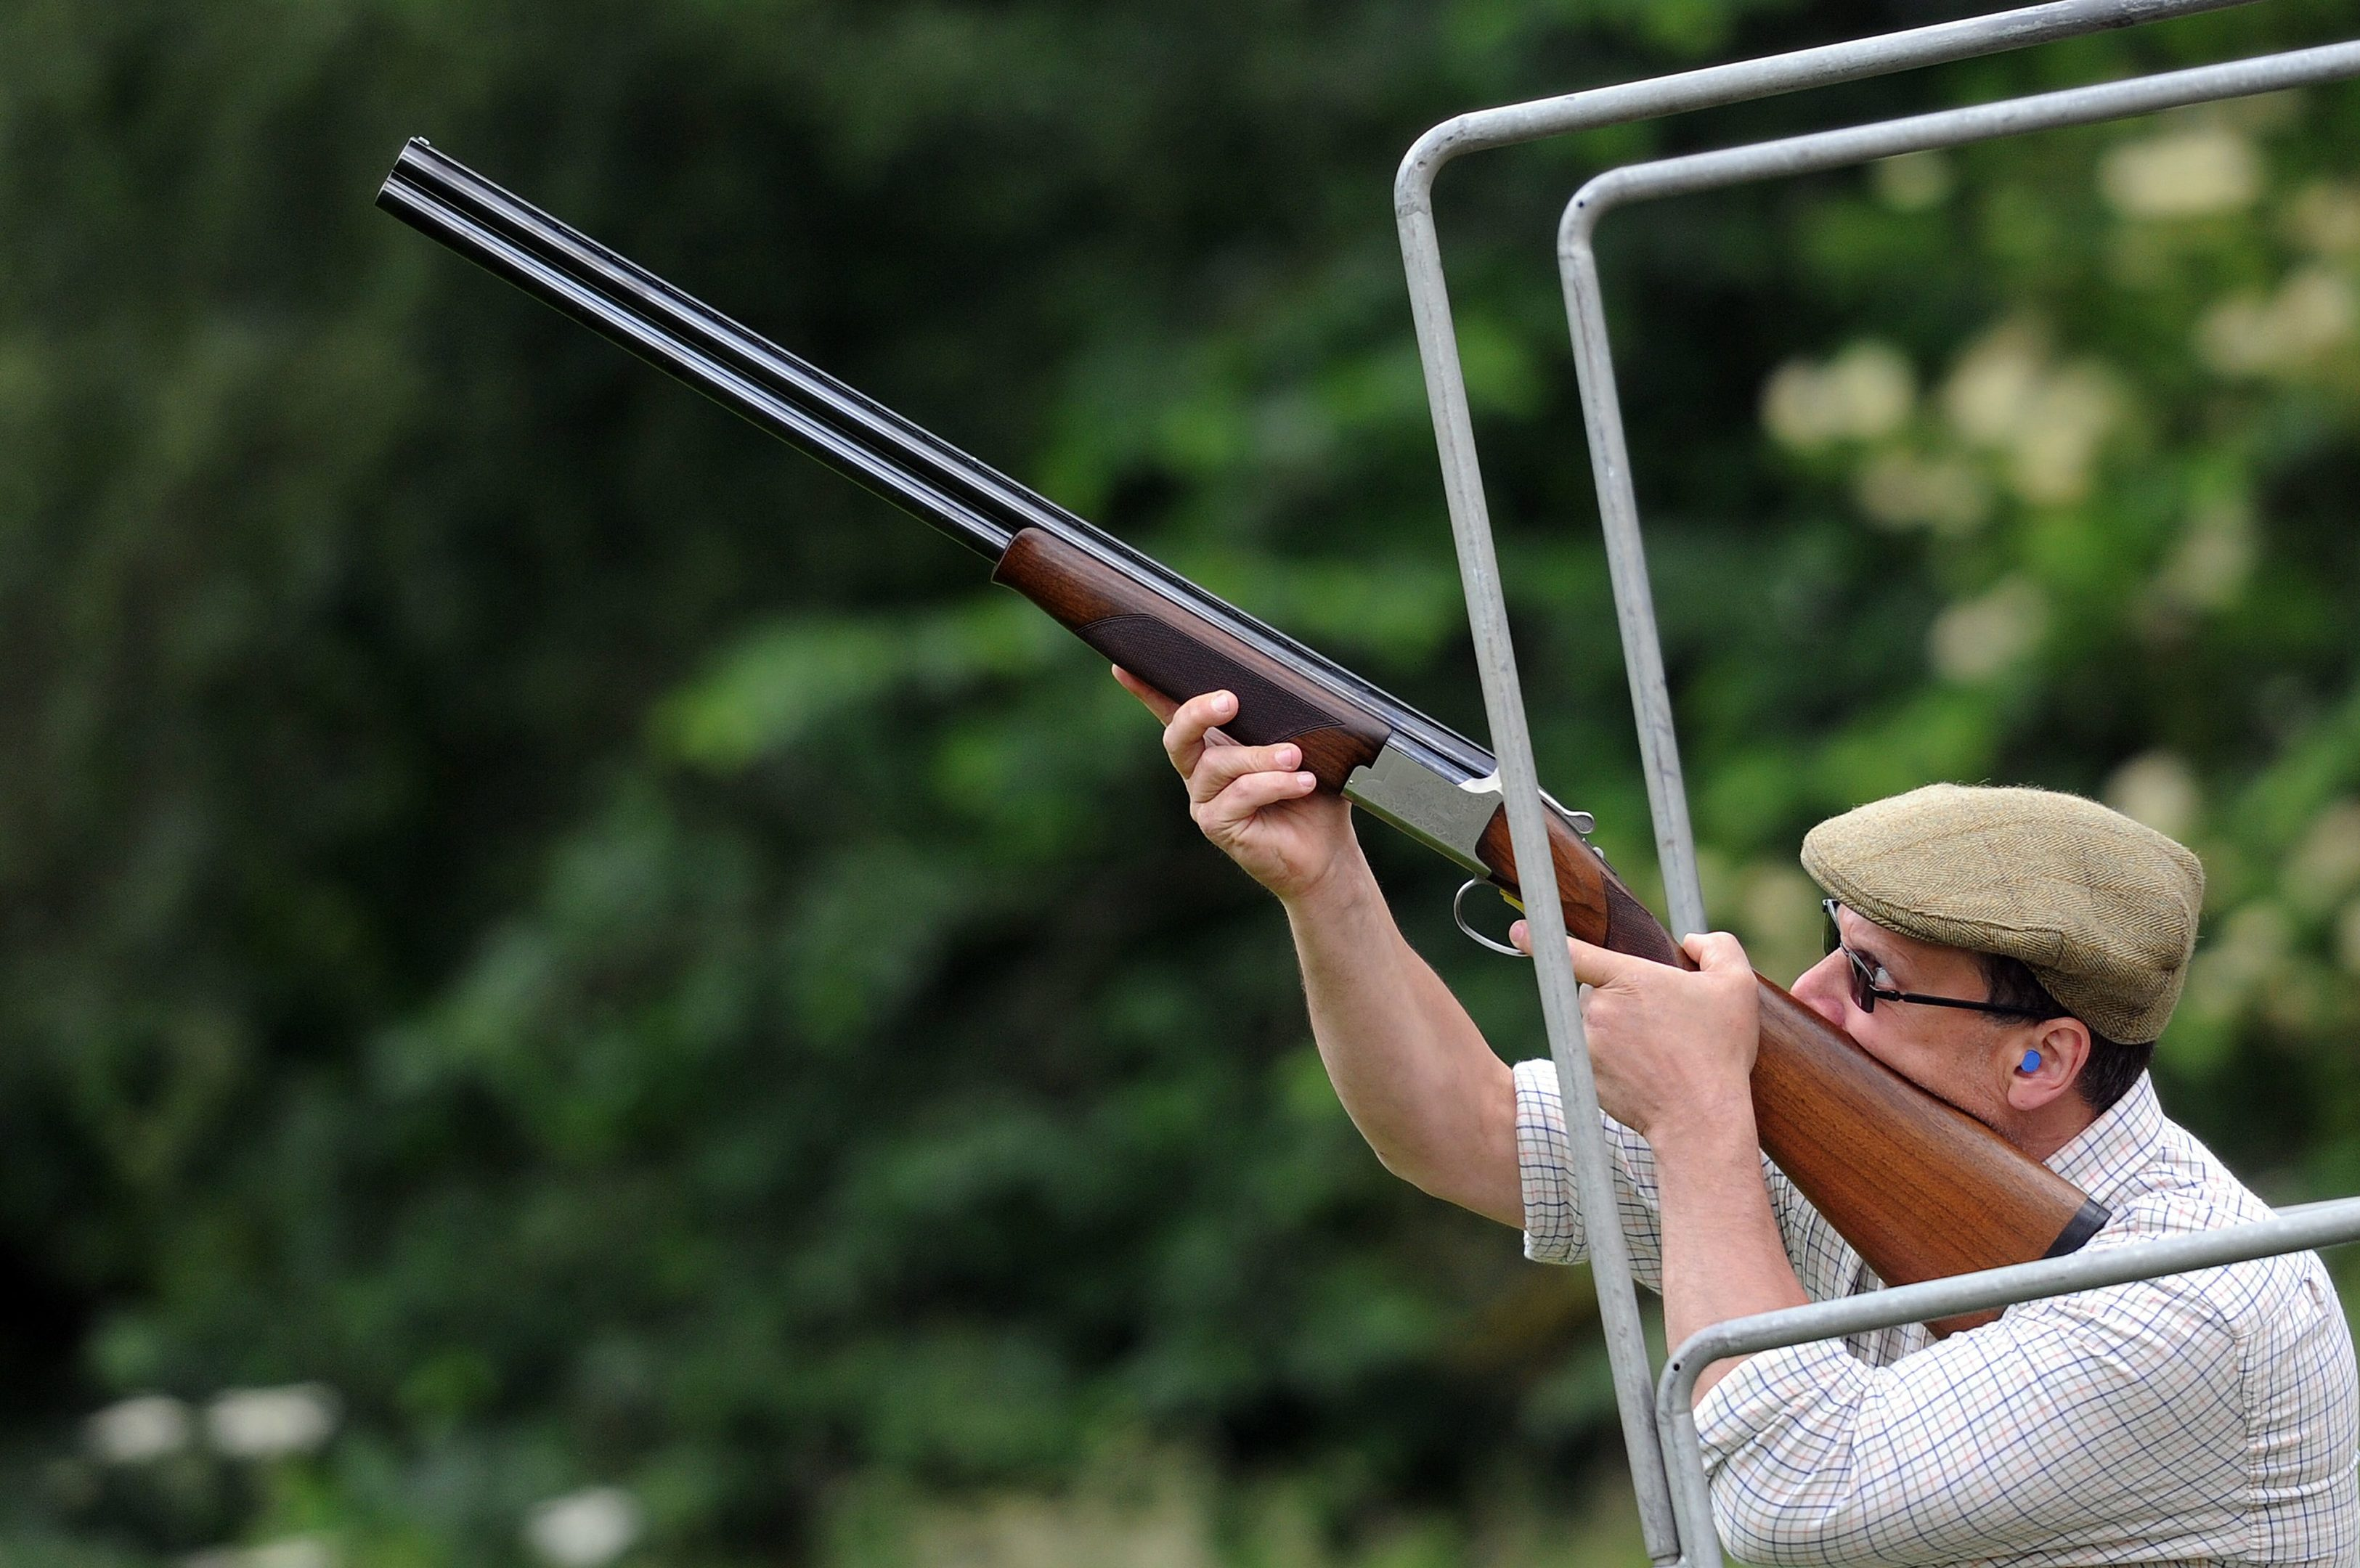 Clay pigeon shooting at last year's Scottish Game Fair.